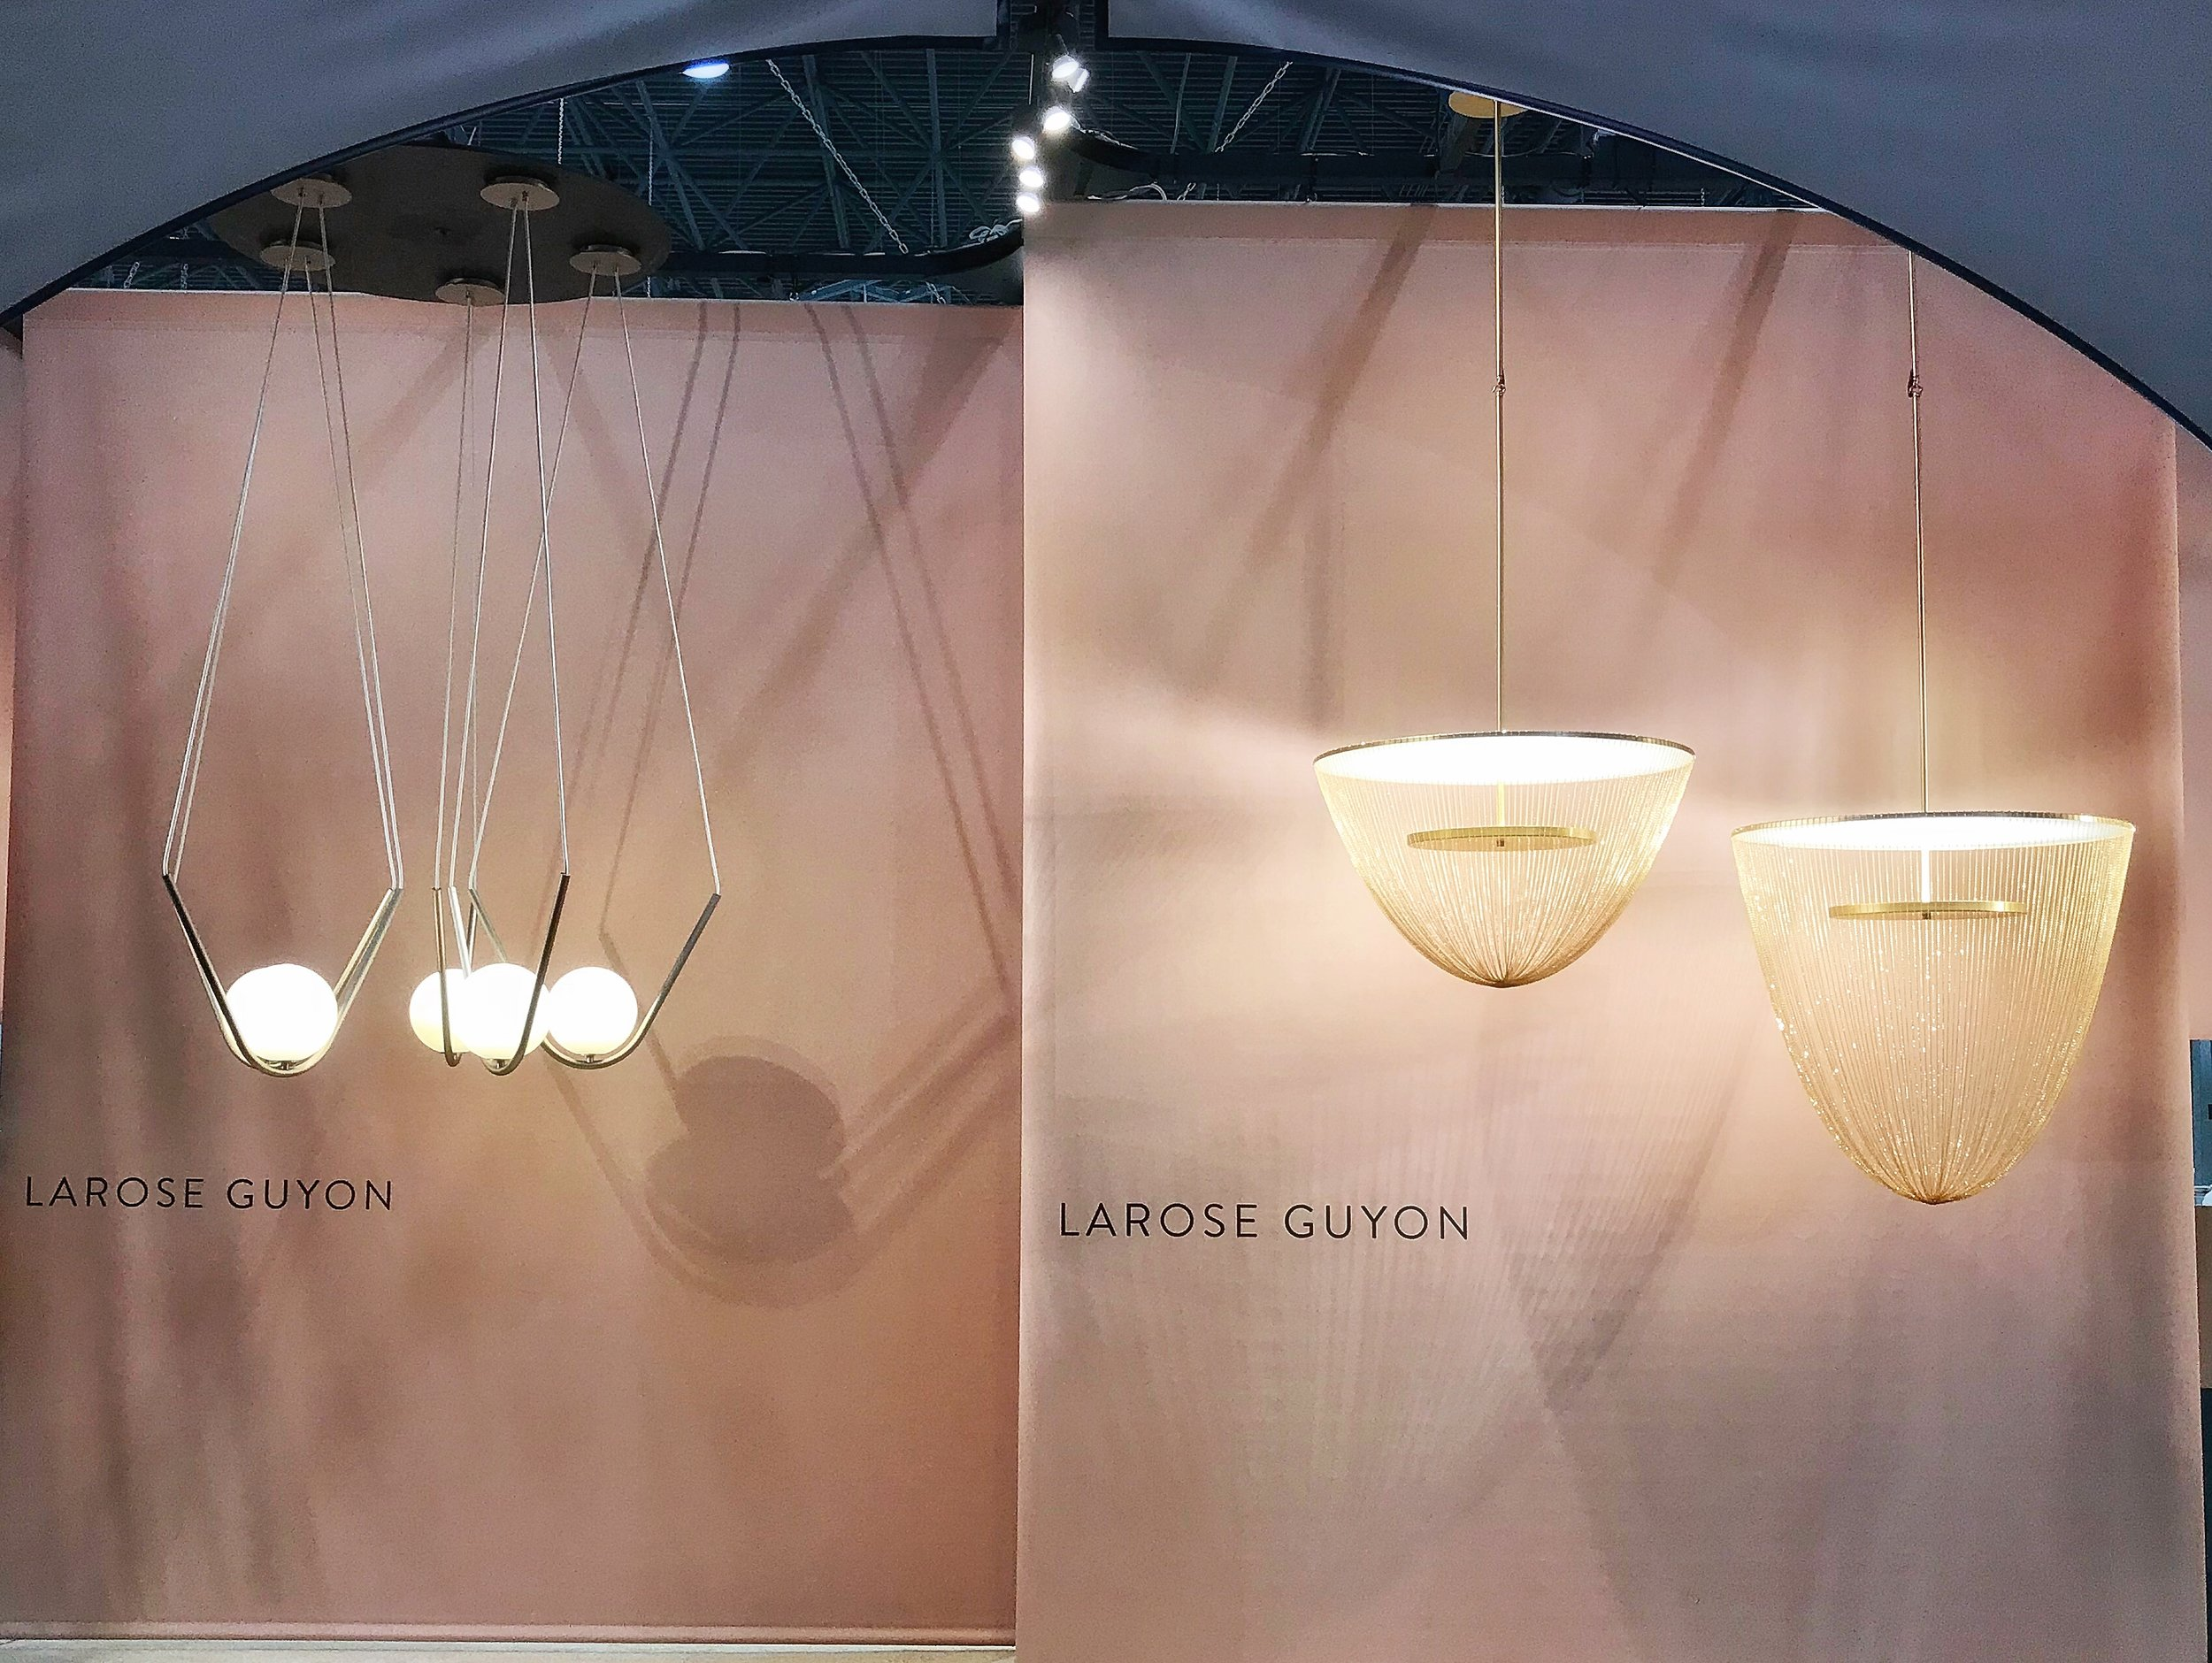 Photo of Larose Guyon's Perle 1 and Celeste Light, ICFF, New York 2018